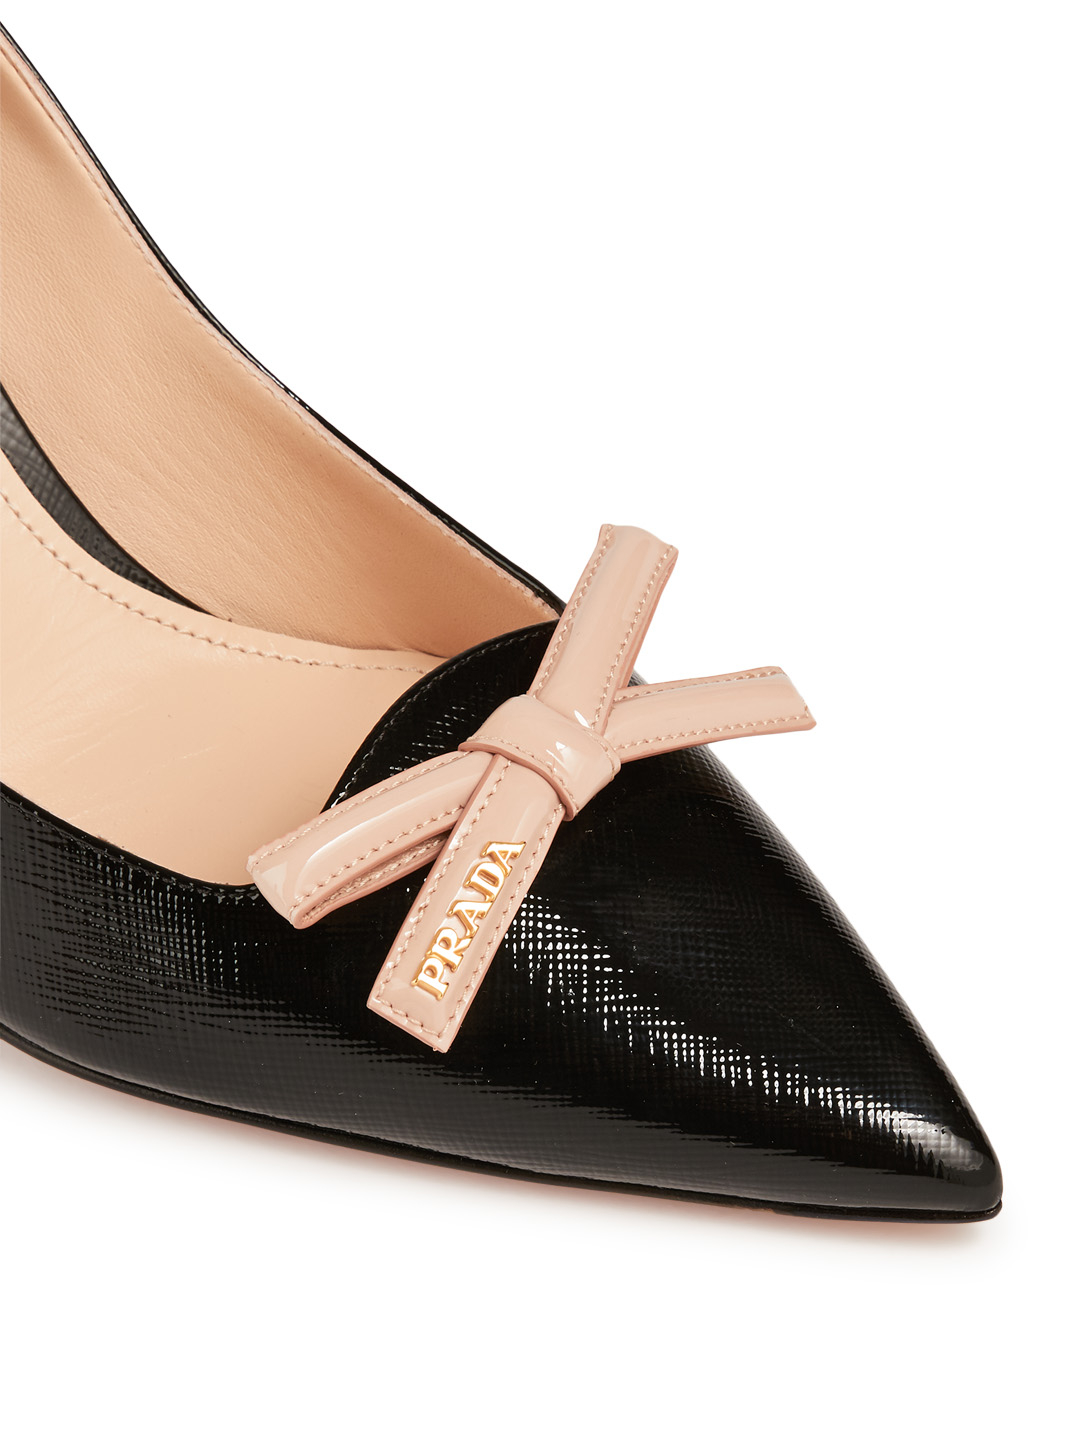 PRADA Leather Pumps With Bow Womens Black